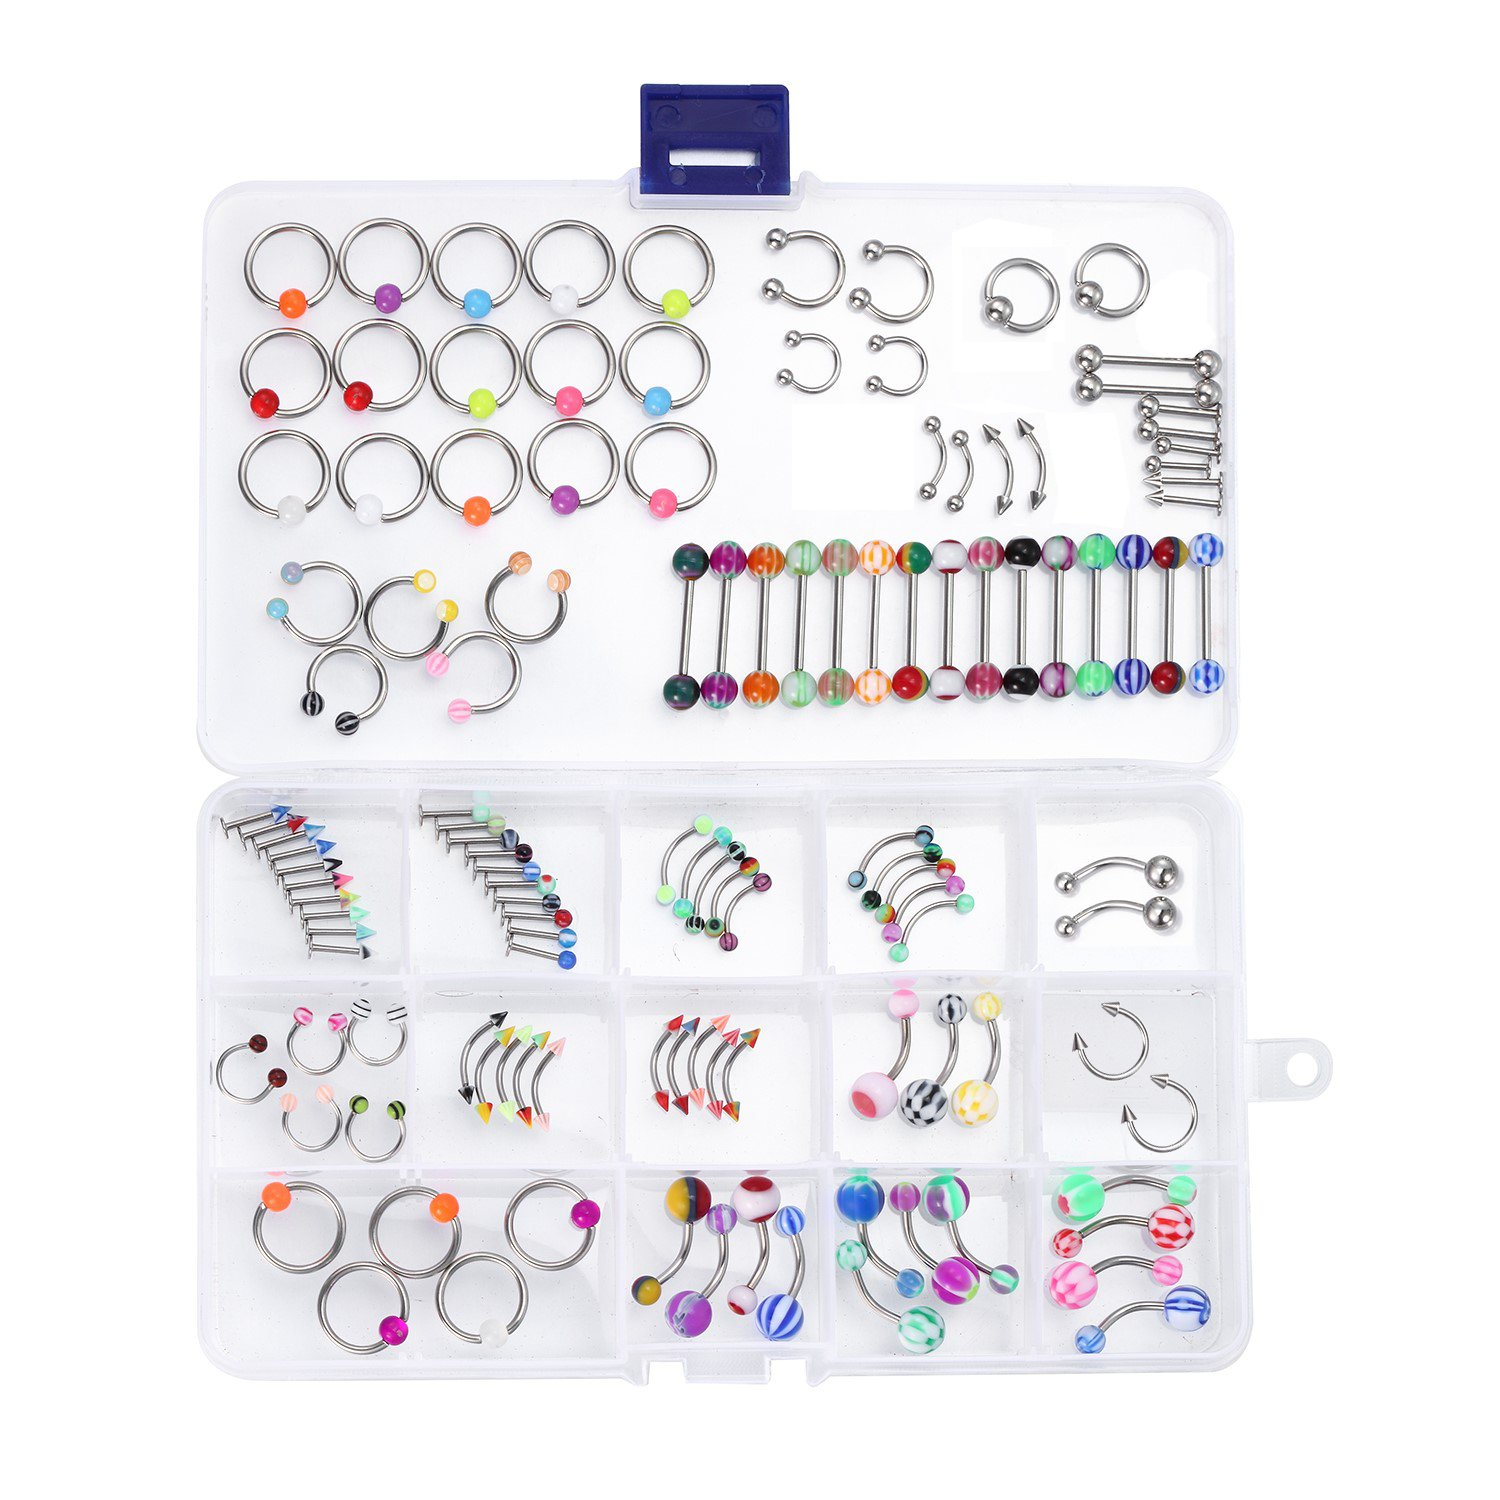 BodyJ4You 60-120PCS Body Jewelry Kit for Belly Ring Labret Tongue Eyebrow Tragus Barbells 14G, 16G Pack 16G Mix Body Jewelry KT8053